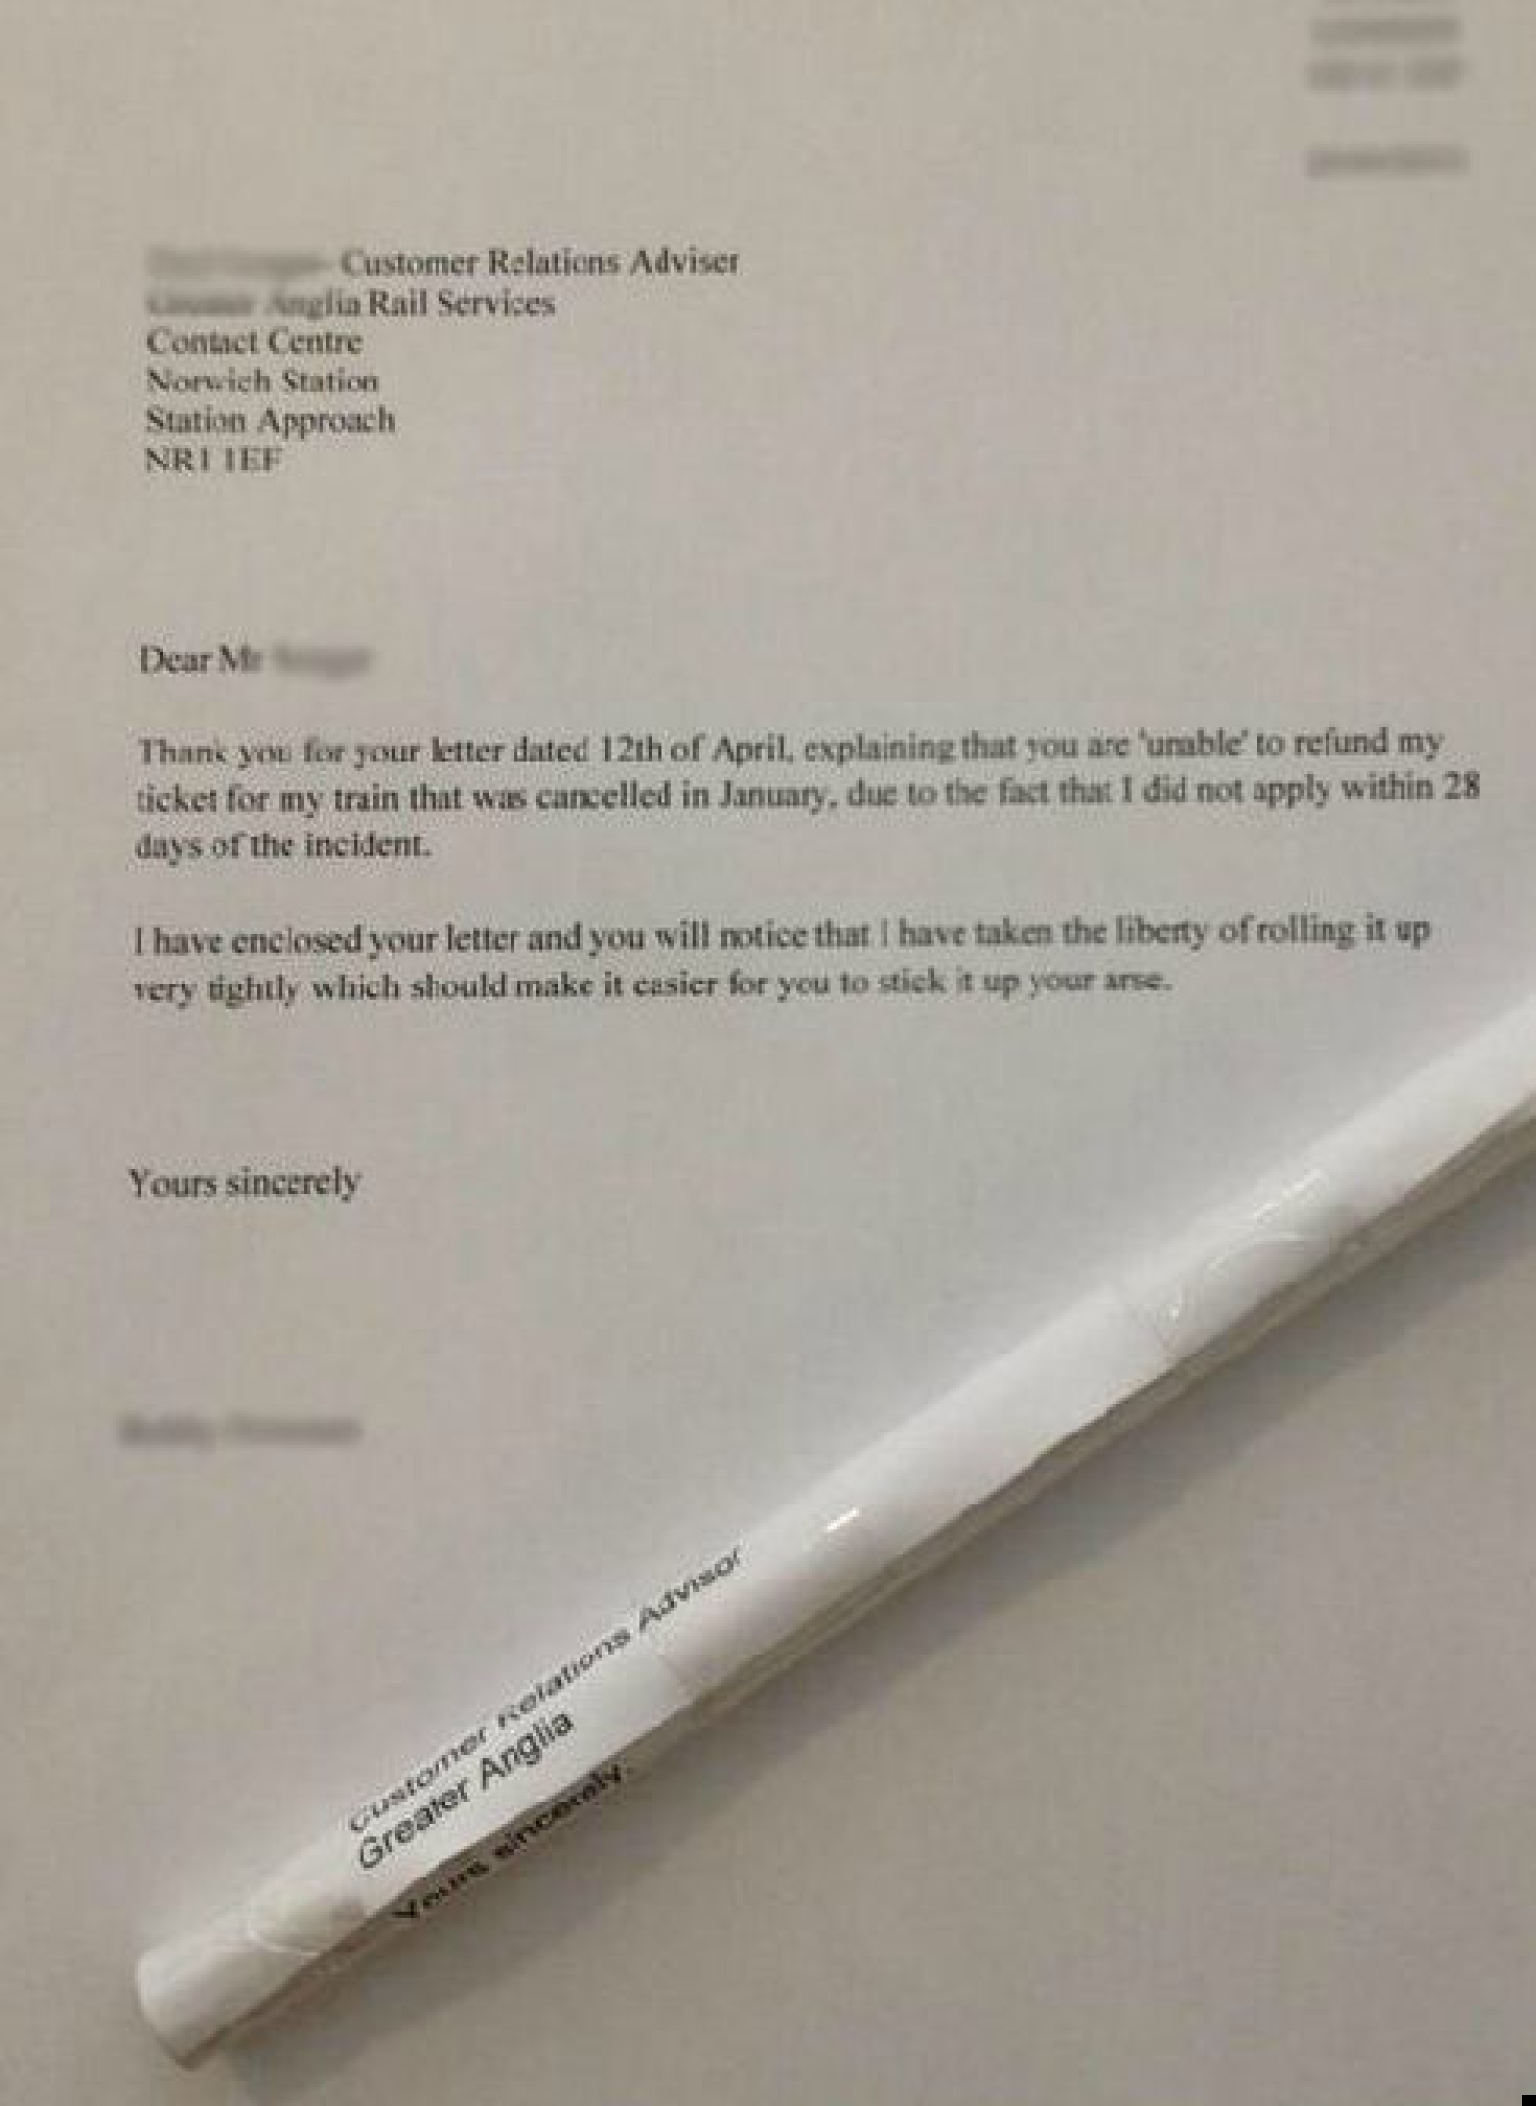 irate passenger returns rolled up refund rejection letter to train irate passenger returns rolled up refund rejection letter to train company explicit instructions picture the huffington post